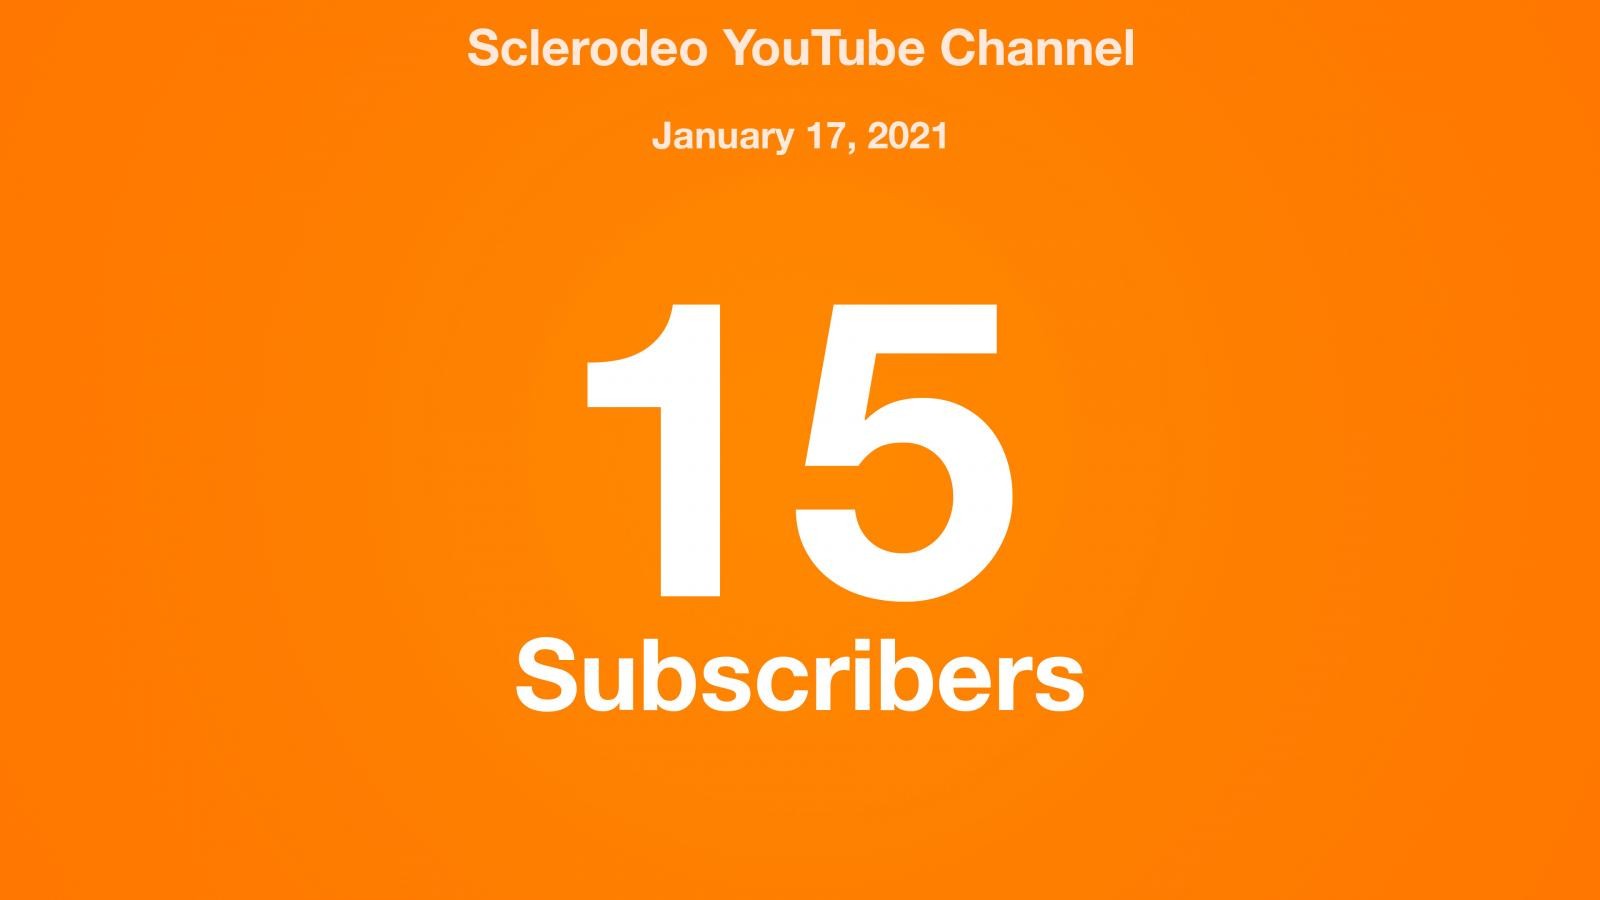 Sclerodeo YouTube Channel, January 17, 2021, 15 Subscribers